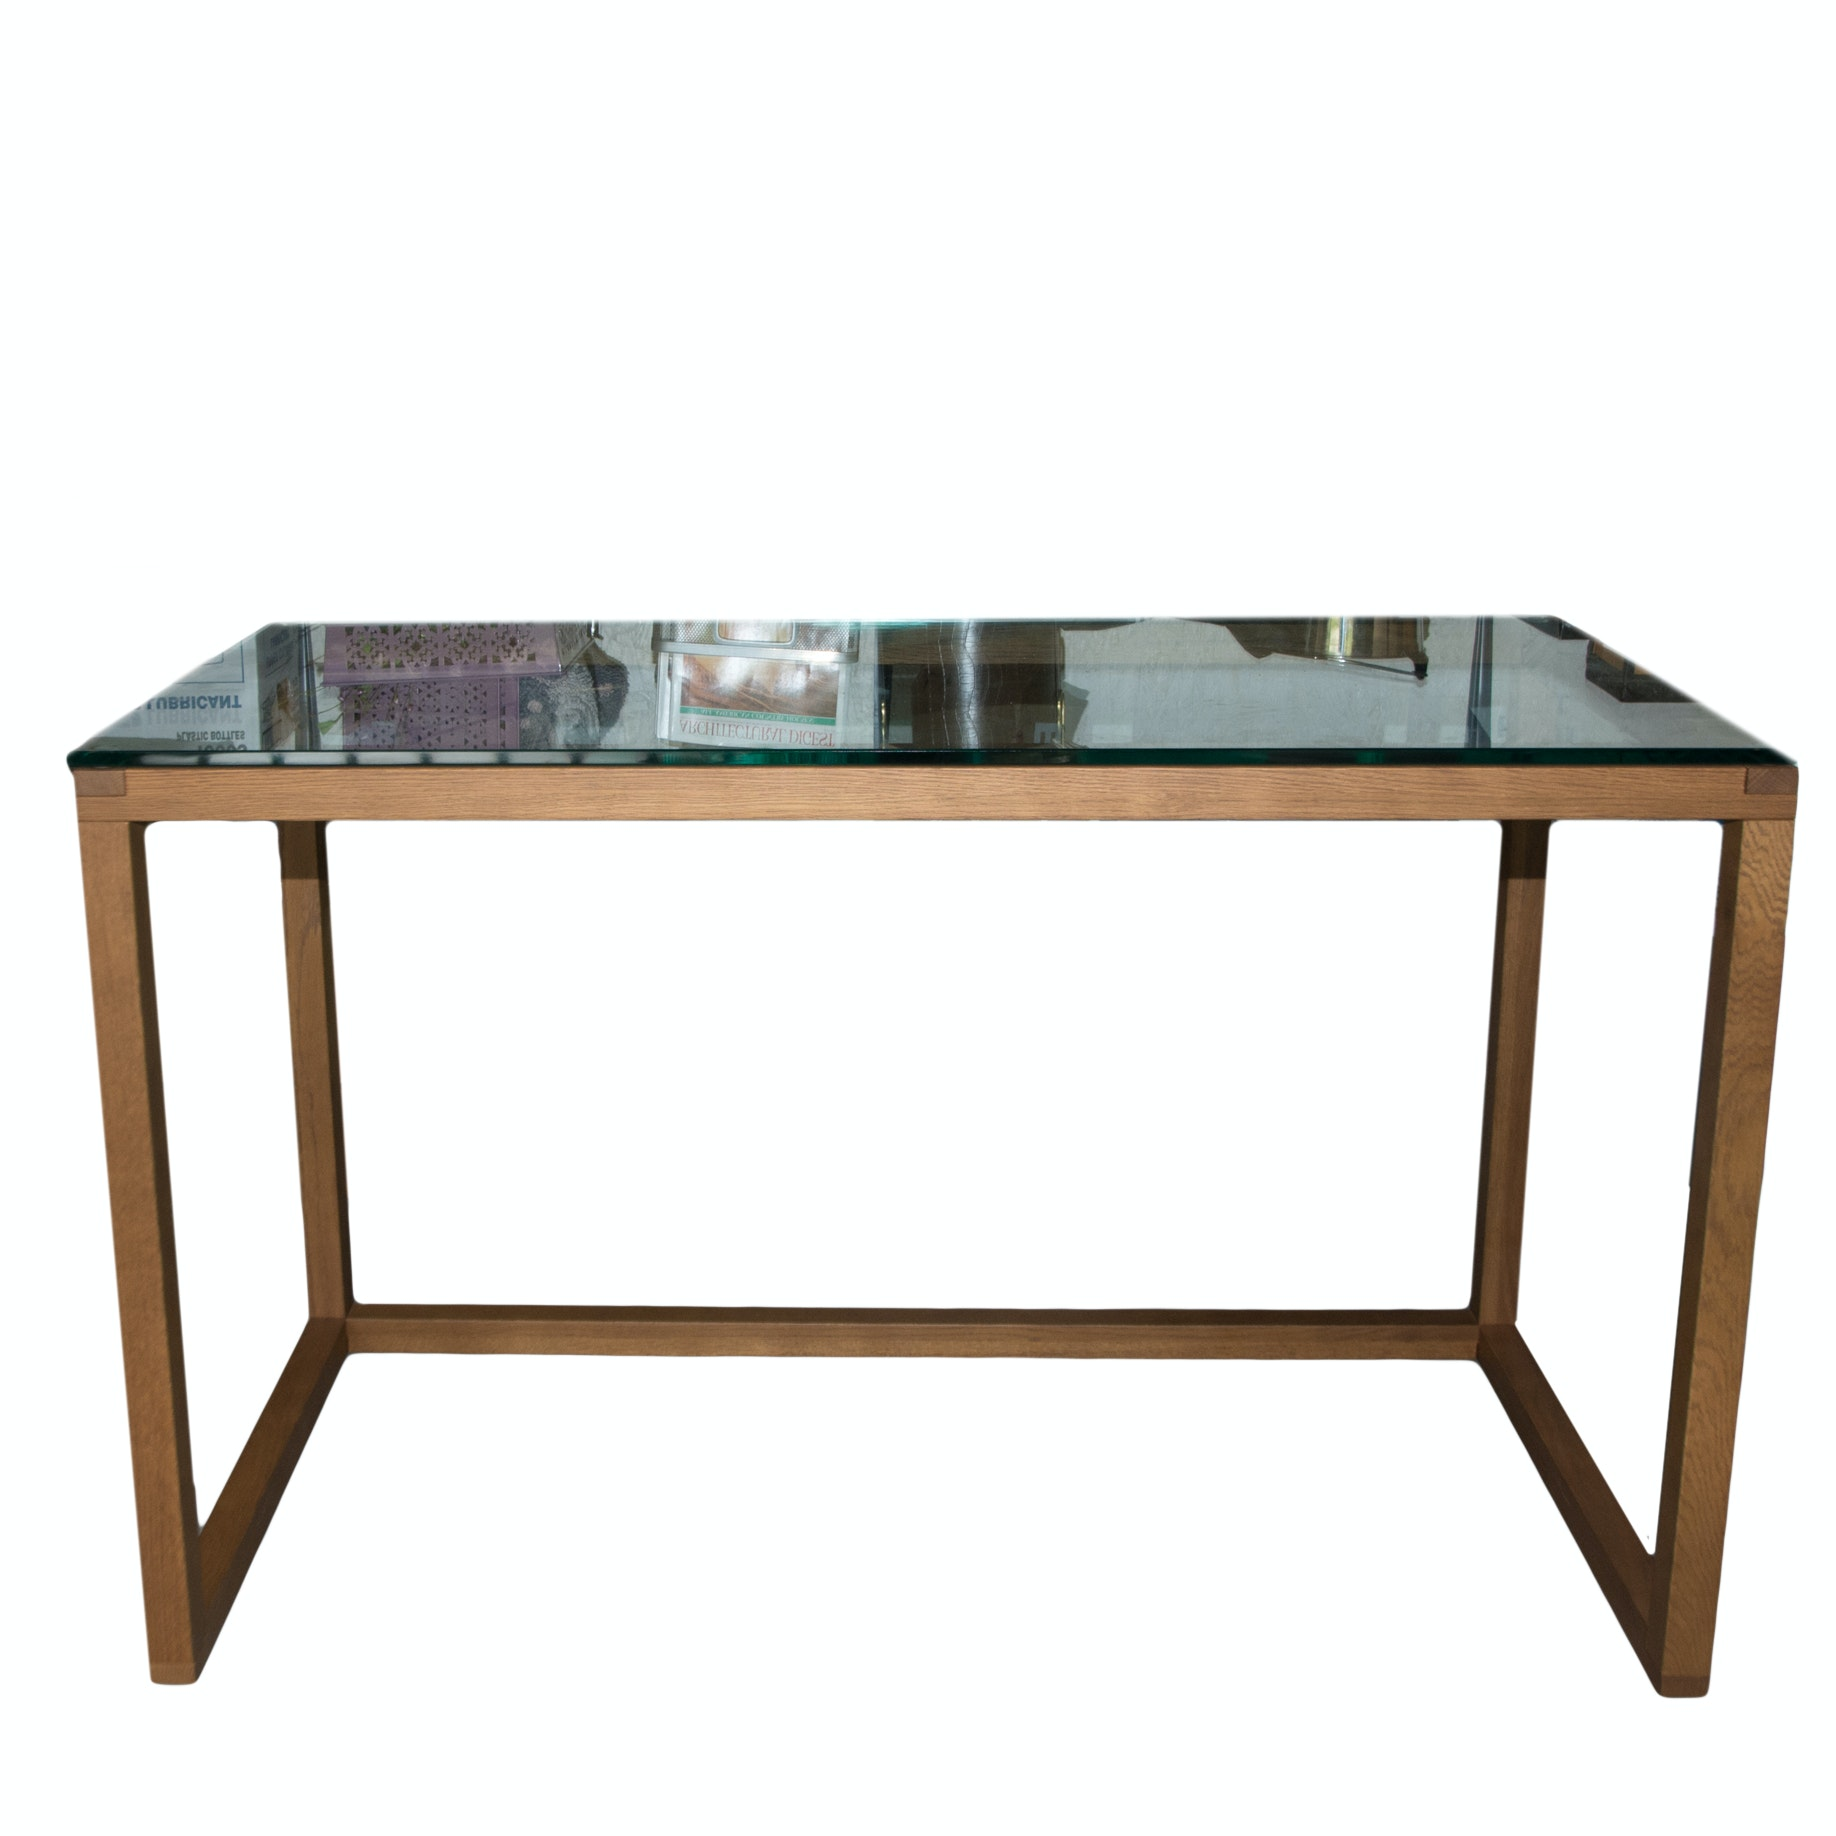 Modernist Glass Top Desk